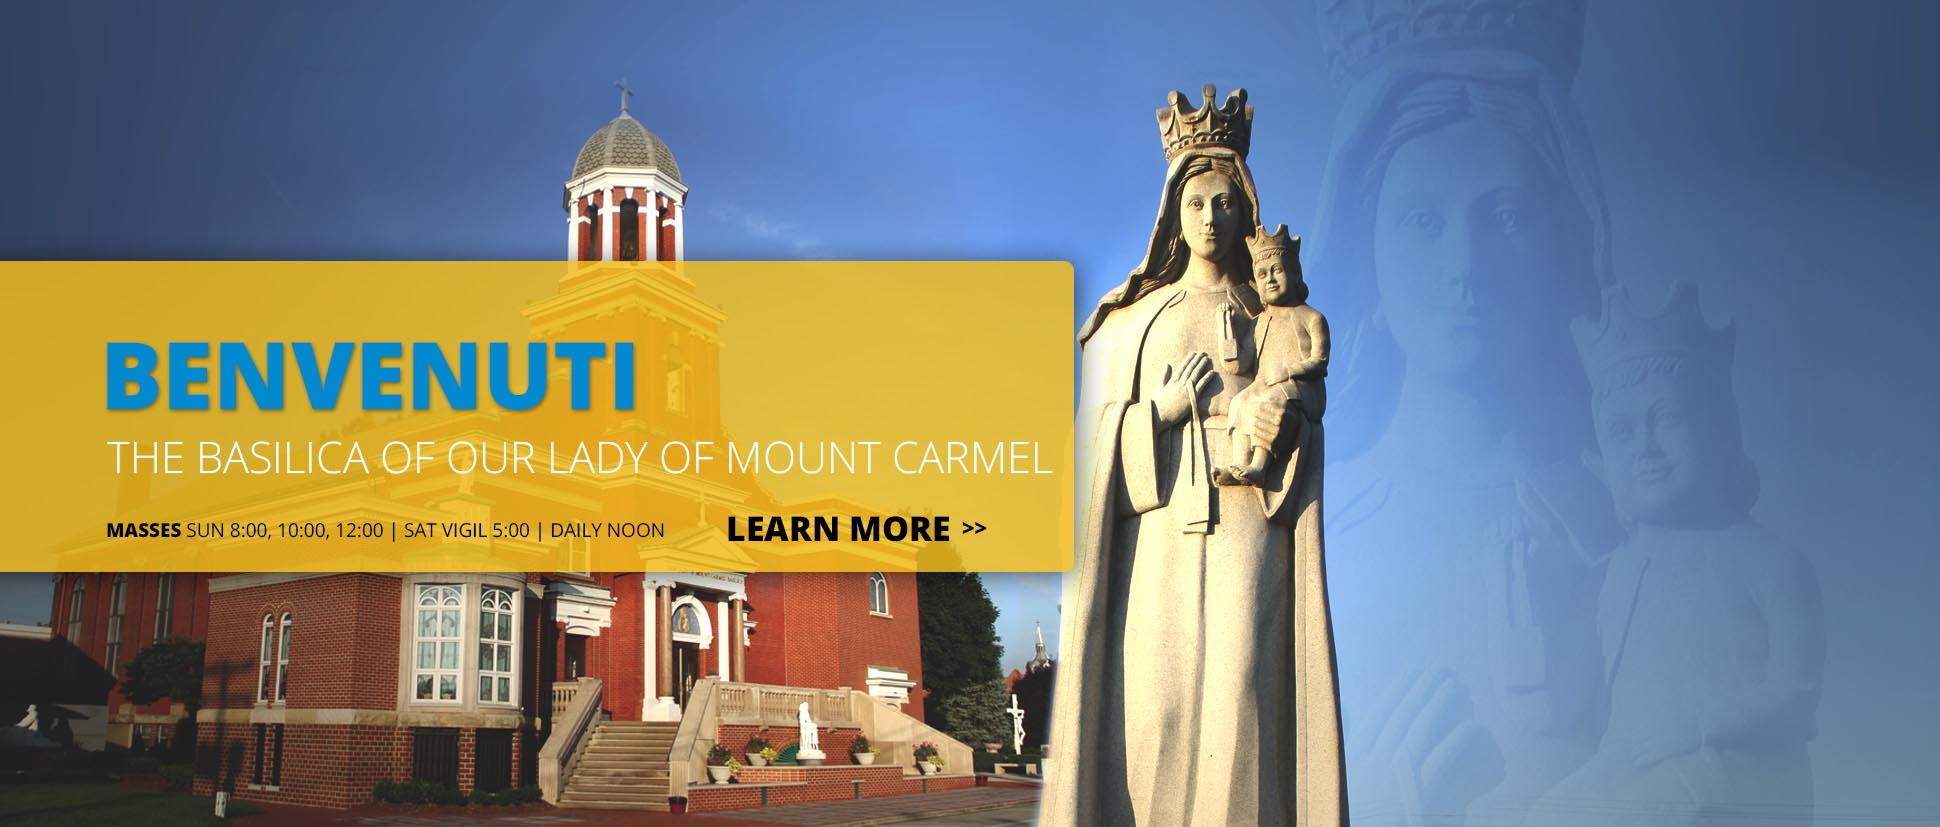 Our Community | Basilica of Our Lady of Mount Carmel & Saint Anthony